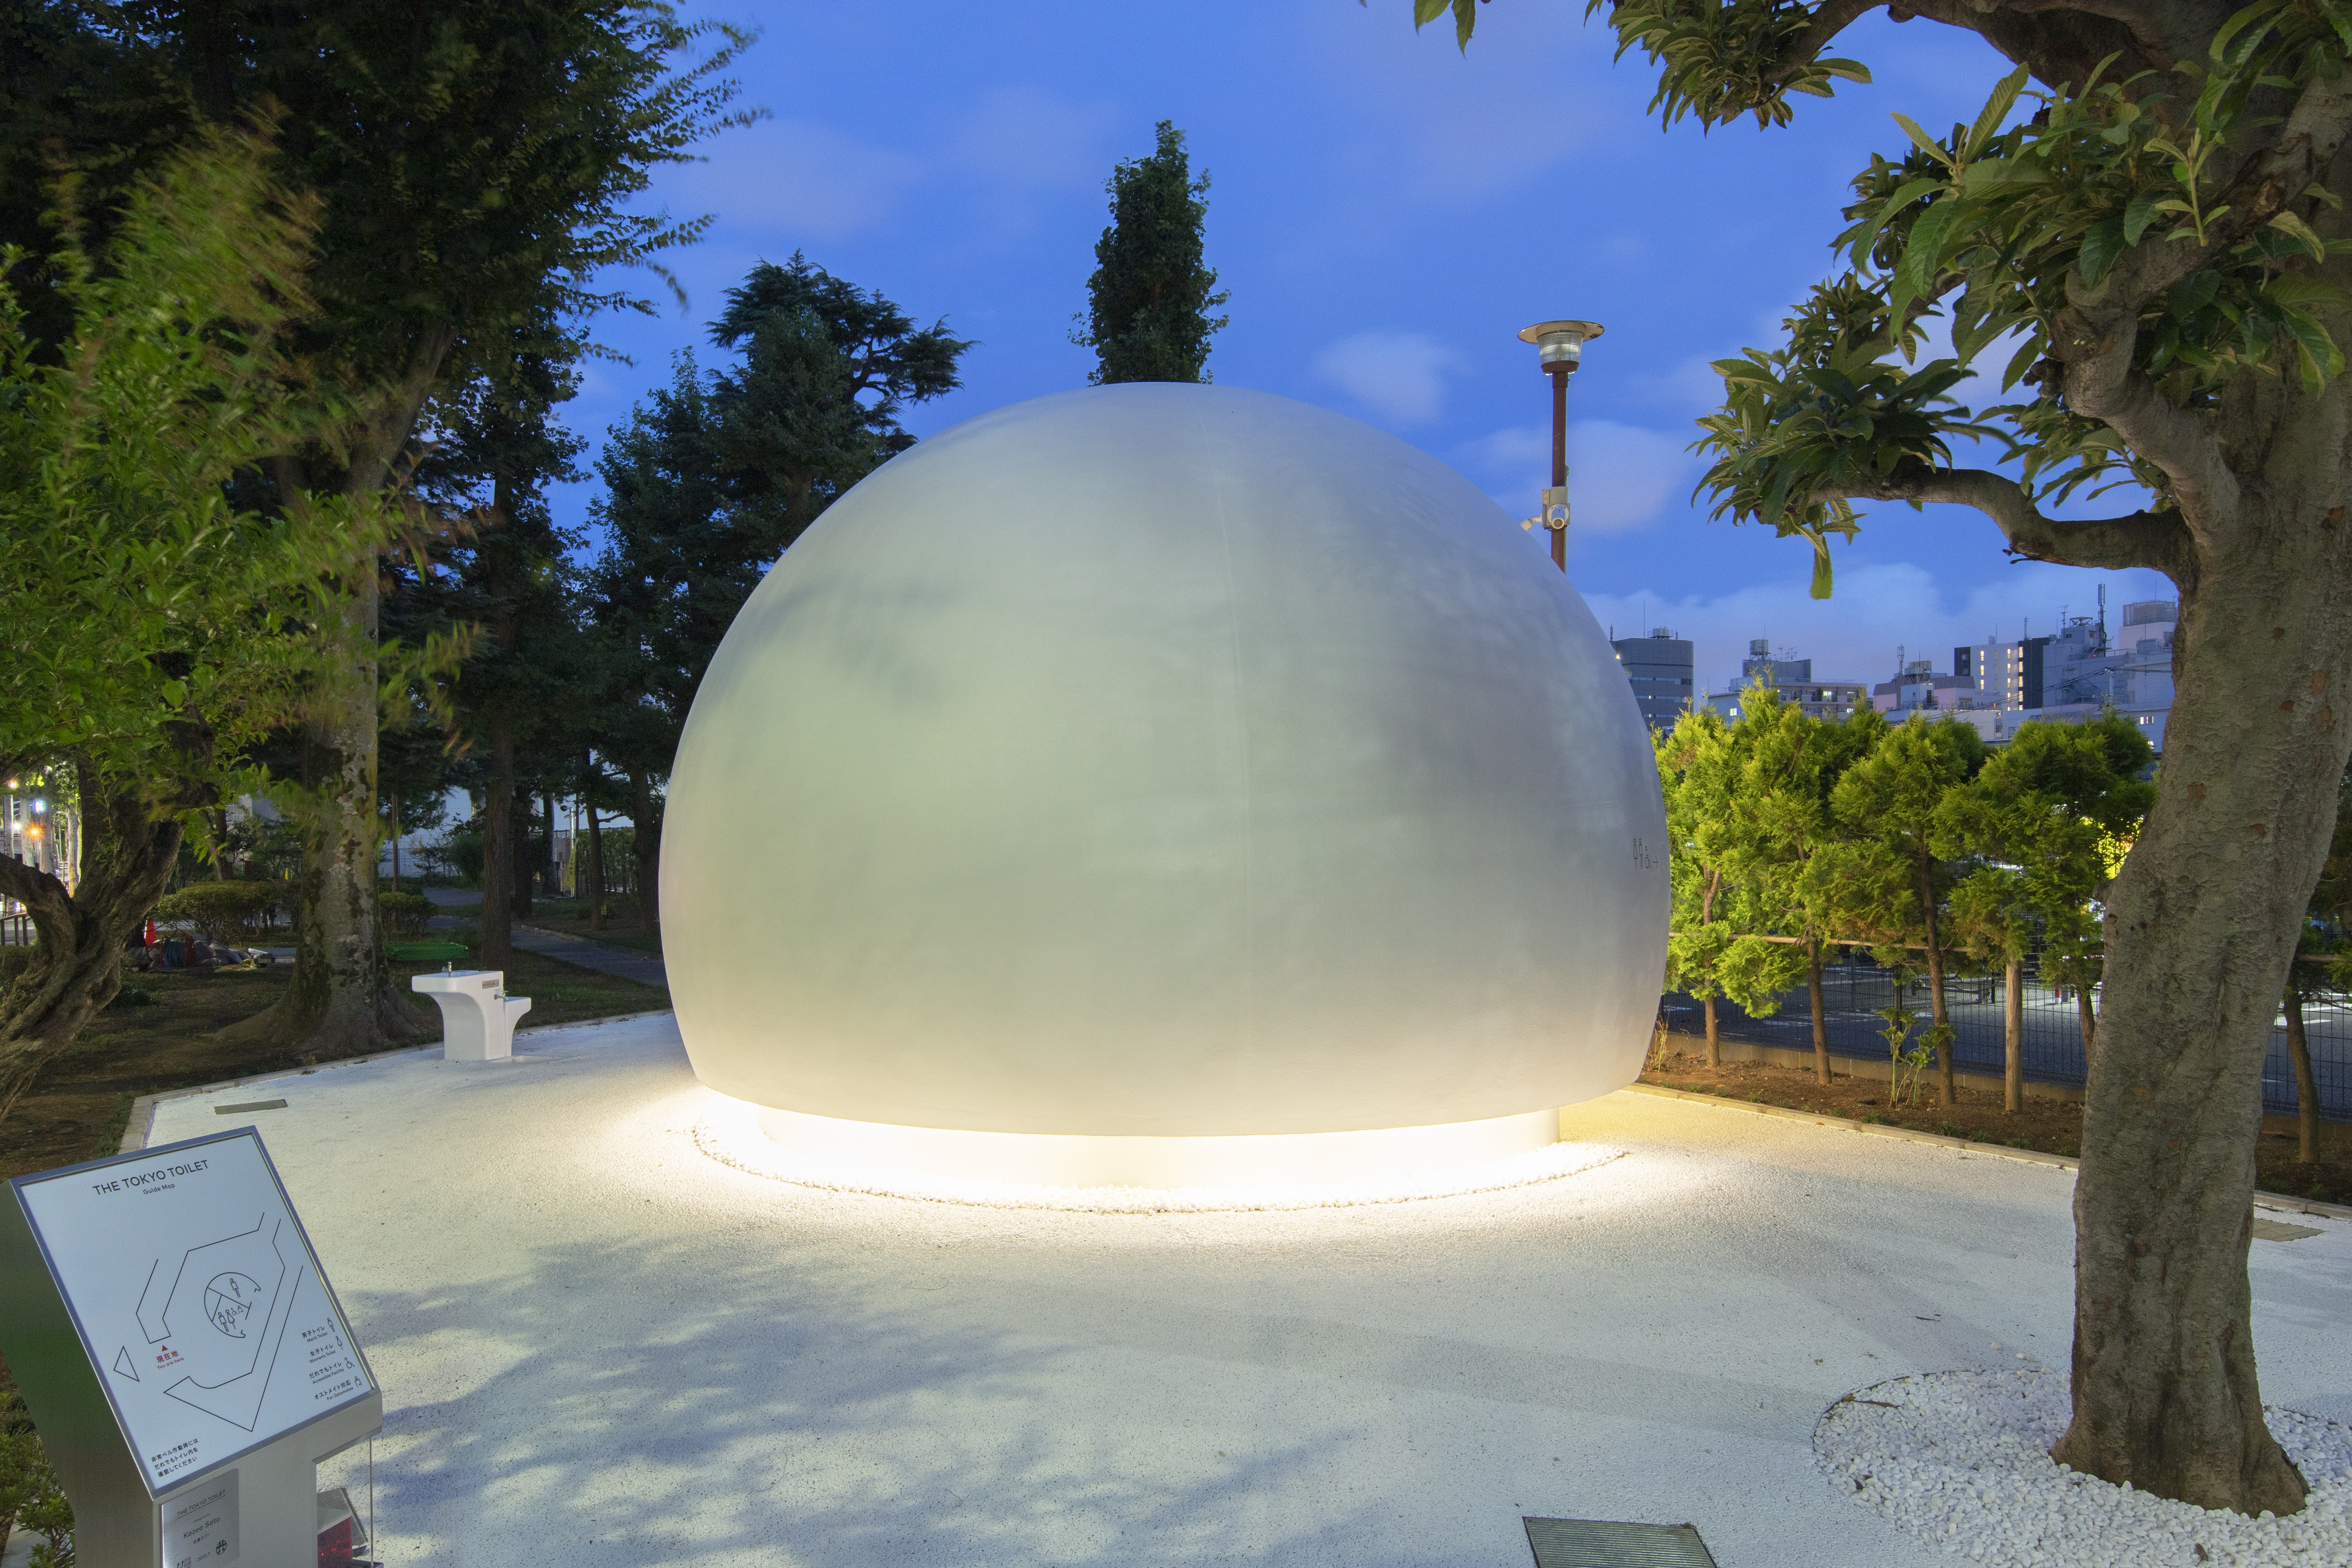 Spherical Restroom Controlled By Voice Could Be Tokyo's Most Hygienic Toilet